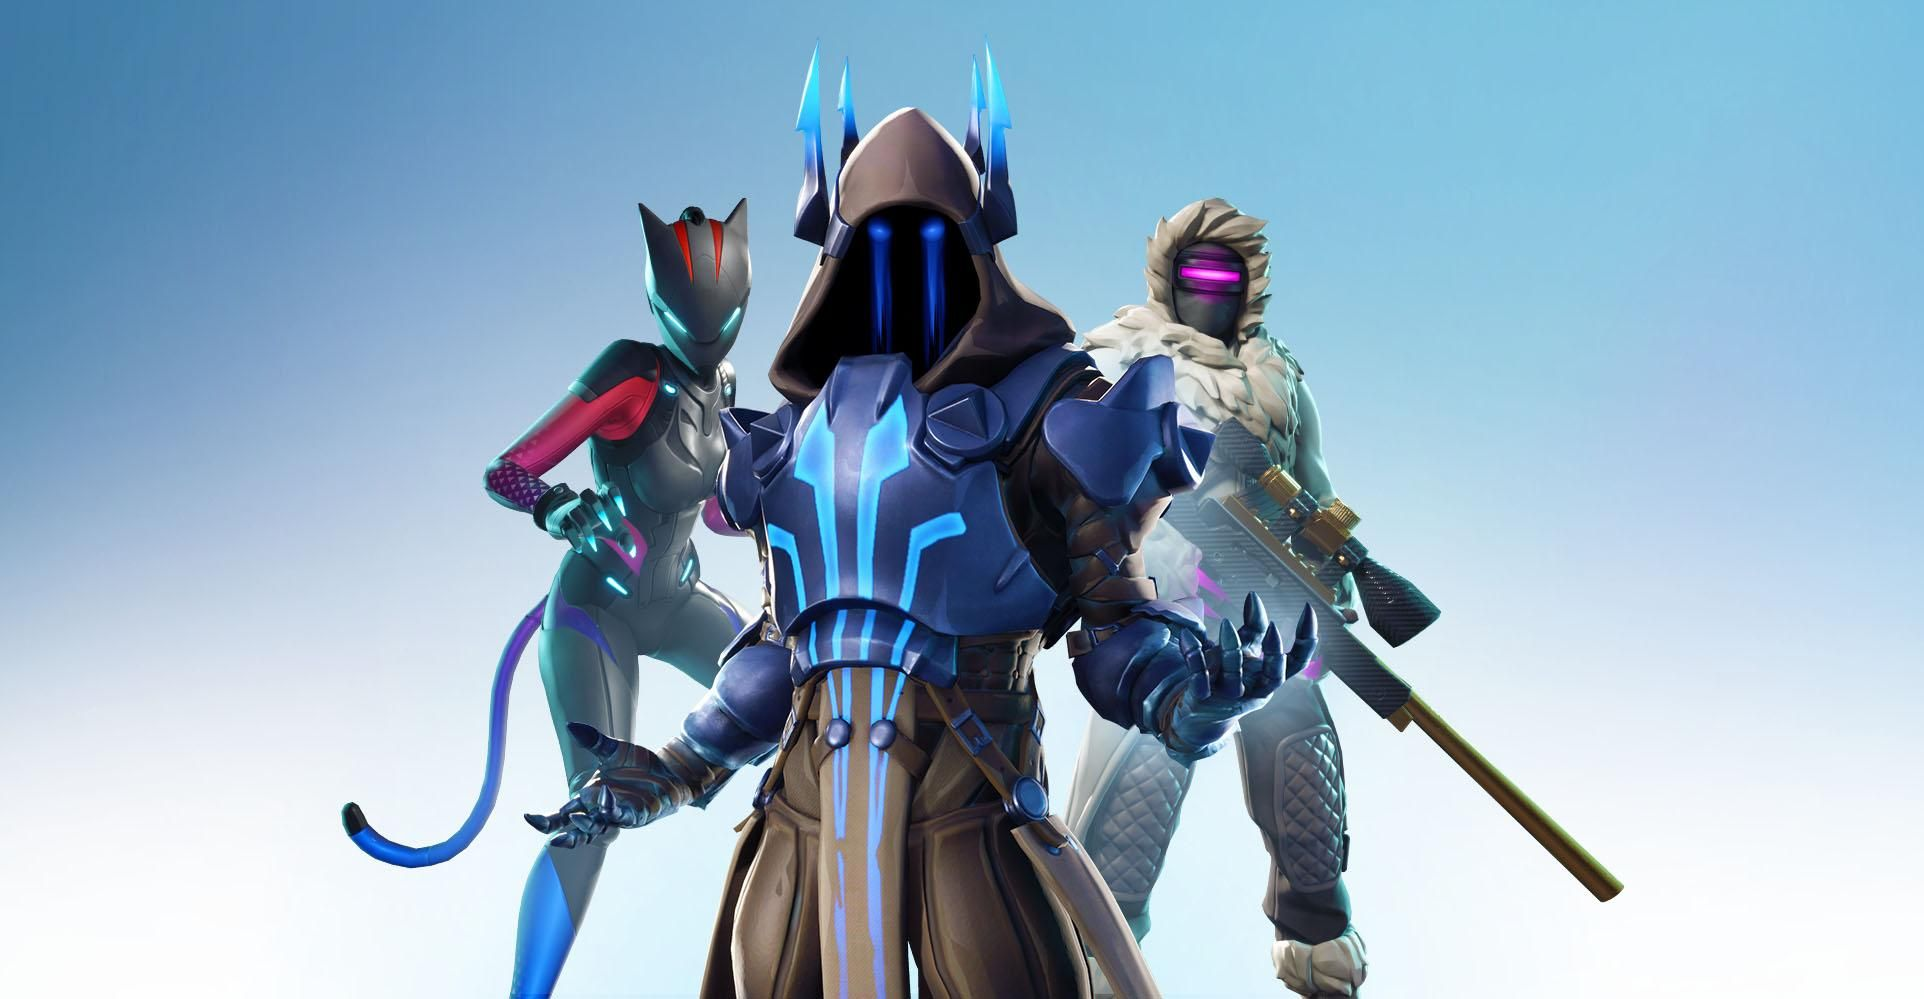 Fortnite Season 7 Lynx Ice King And Zenith Wallpaper 1920x1080 Need Trendy Iphone7 Iphone7plus Case Check Out Http Fortnite Epic Games Epic Games Fortnite